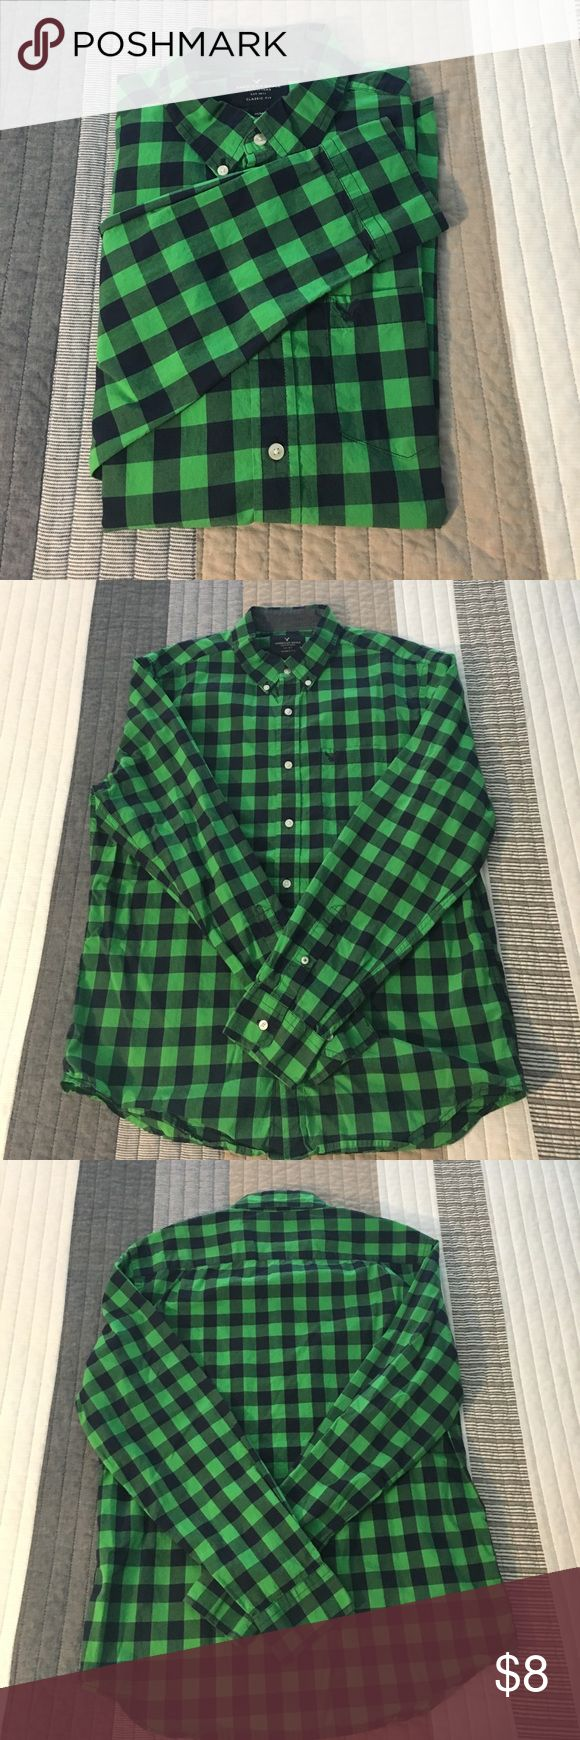 American Eagle green and blue checkered shirt Hardly worn, still in great shape. Feel free to add to a bundle with any other button downs to save money. American Eagle Outfitters Shirts Casual Button Down Shirts